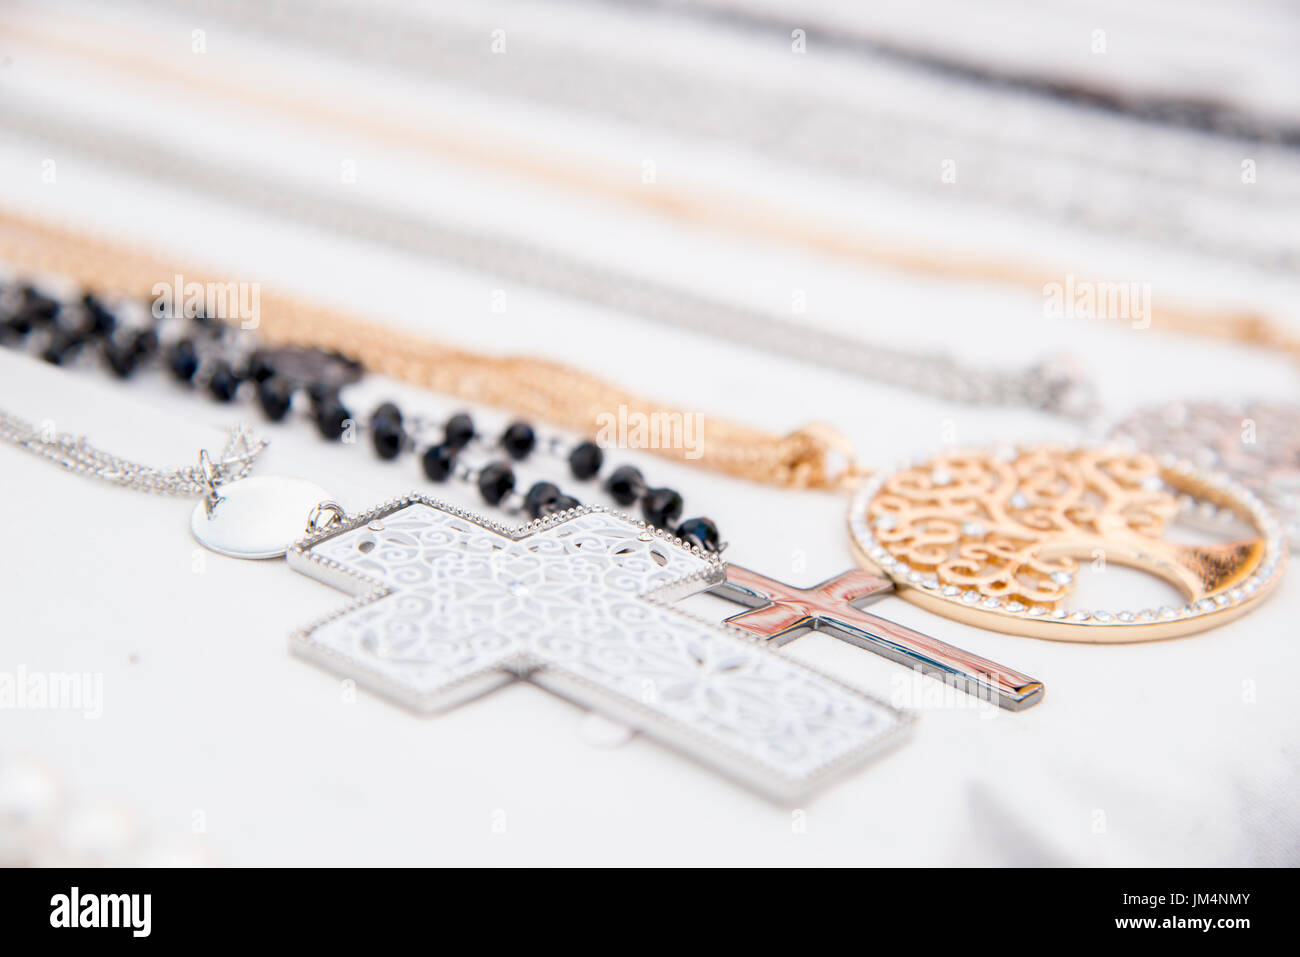 Street market - Souvenirs - Fashion - Accessory - Colourful and various pieces of jewellery - Necklaces - Stock Image